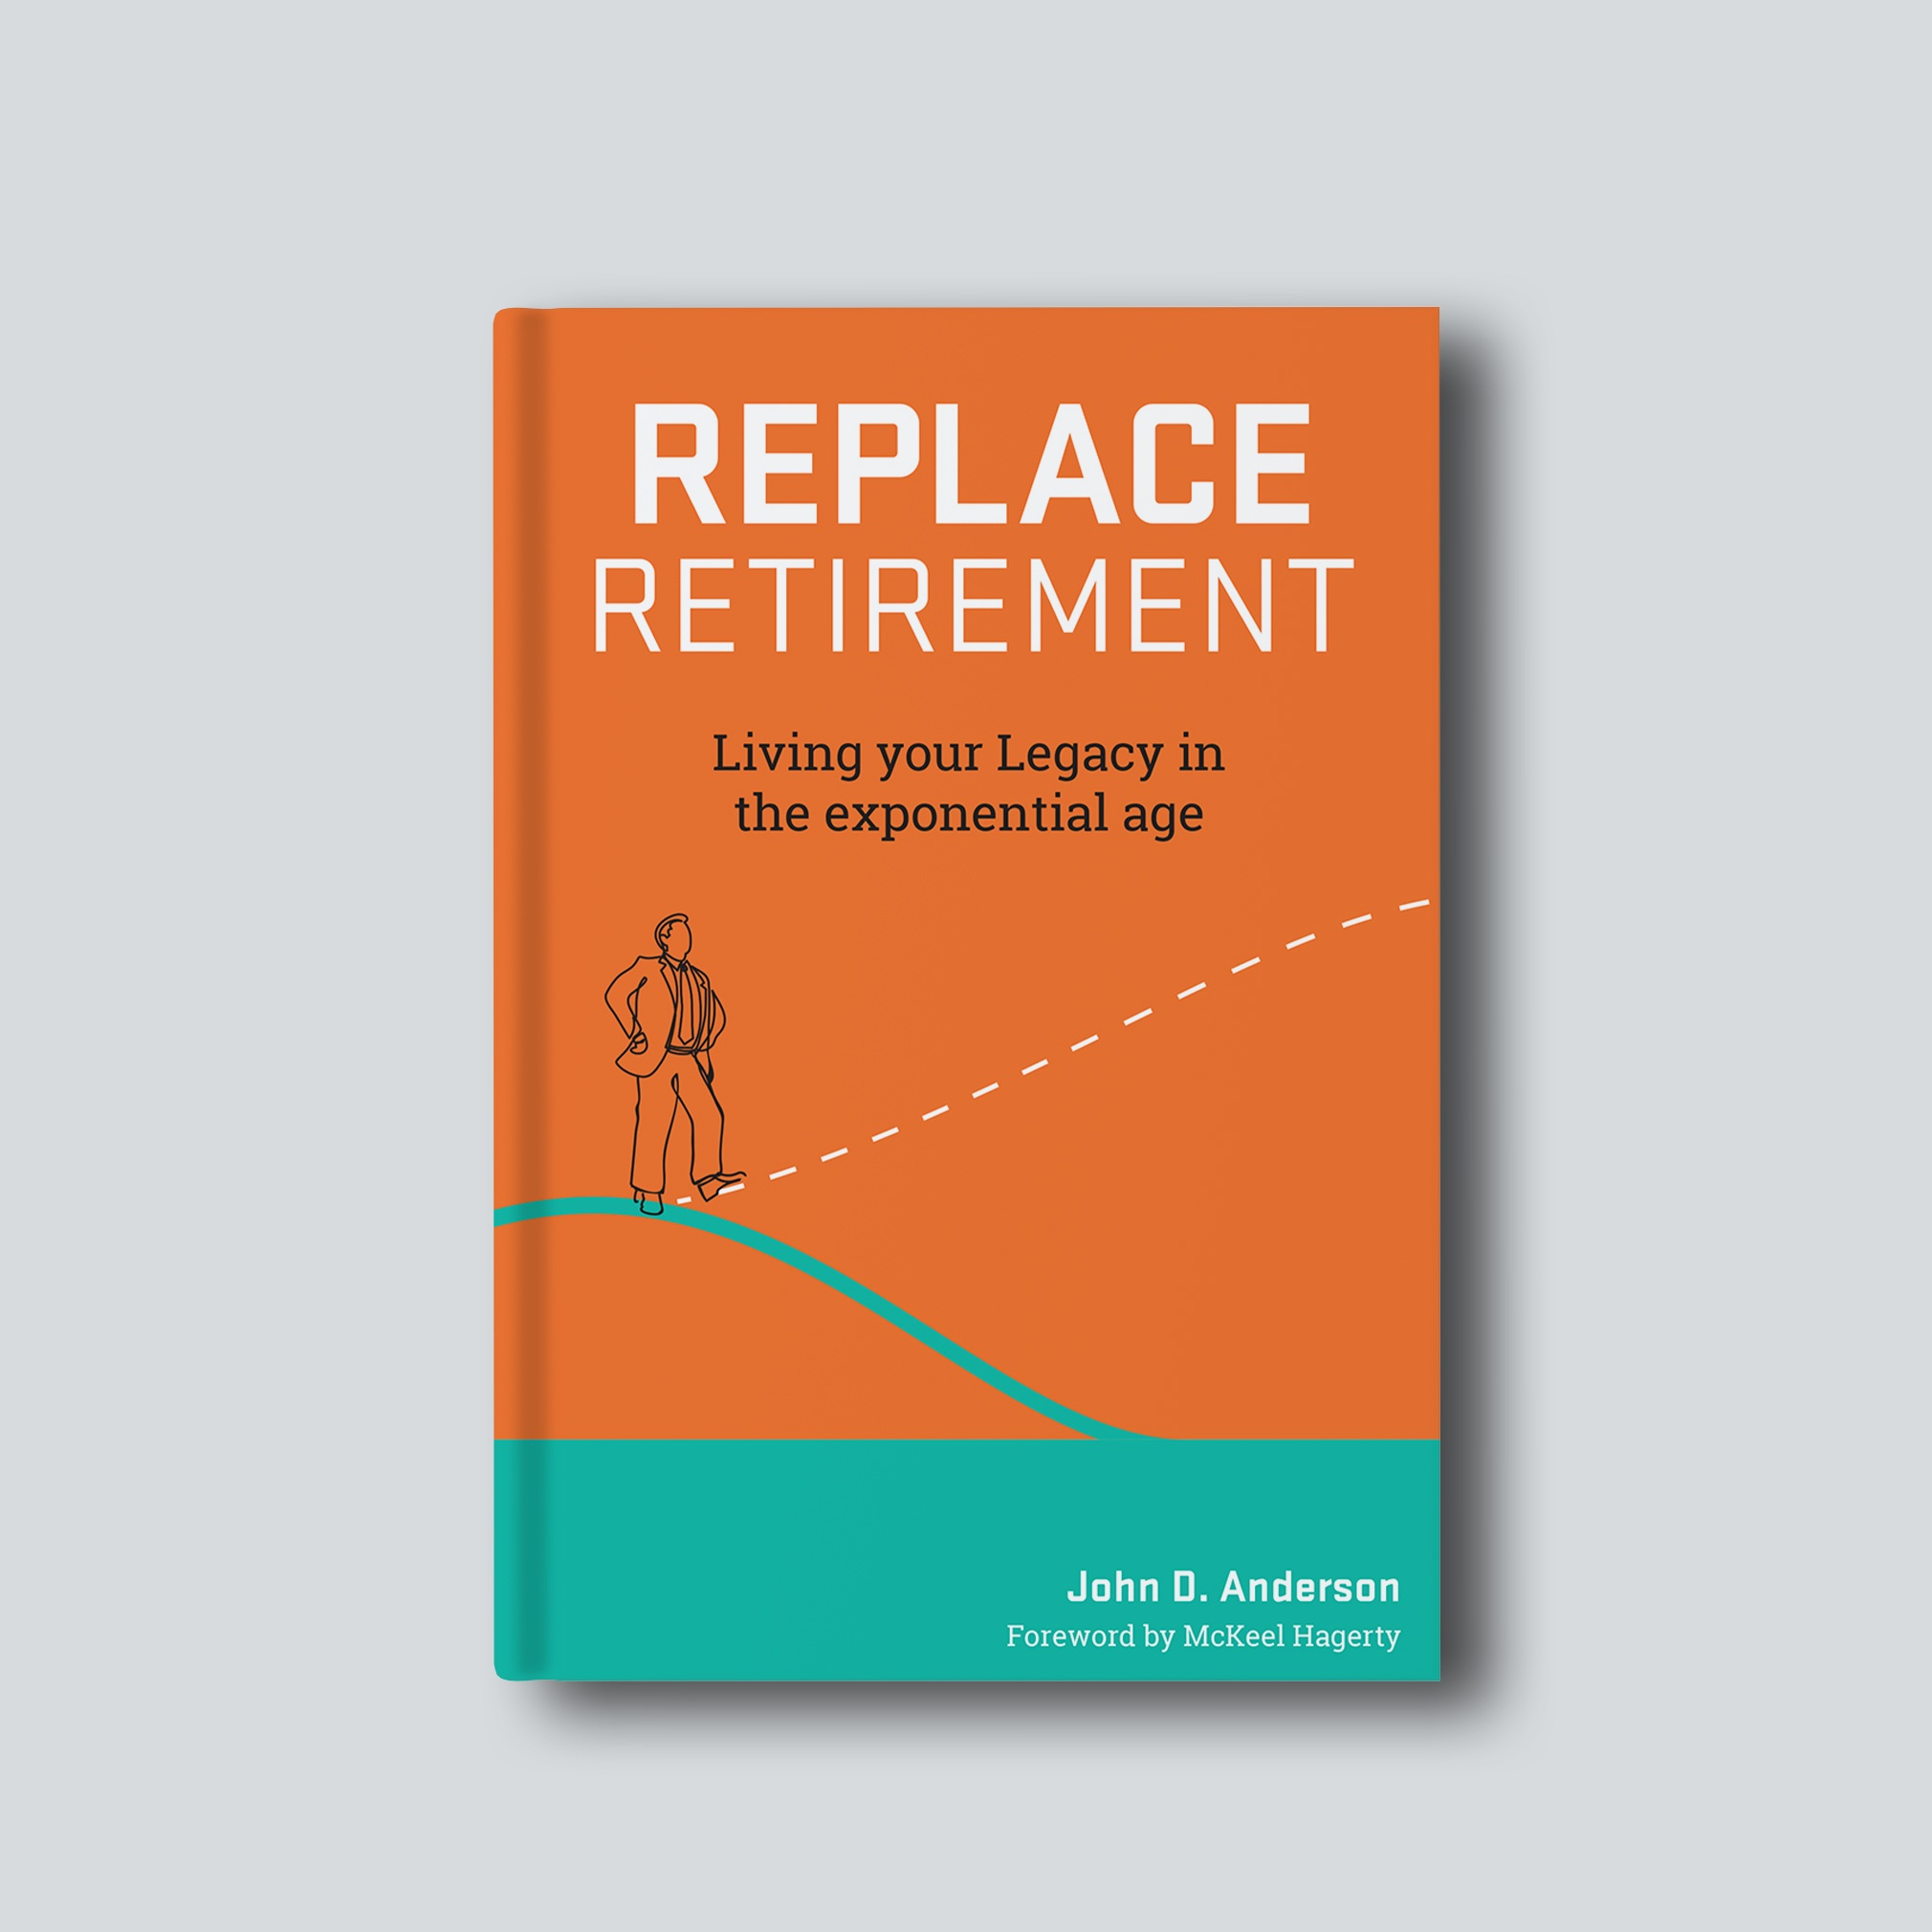 Replace Retirement Book Cover